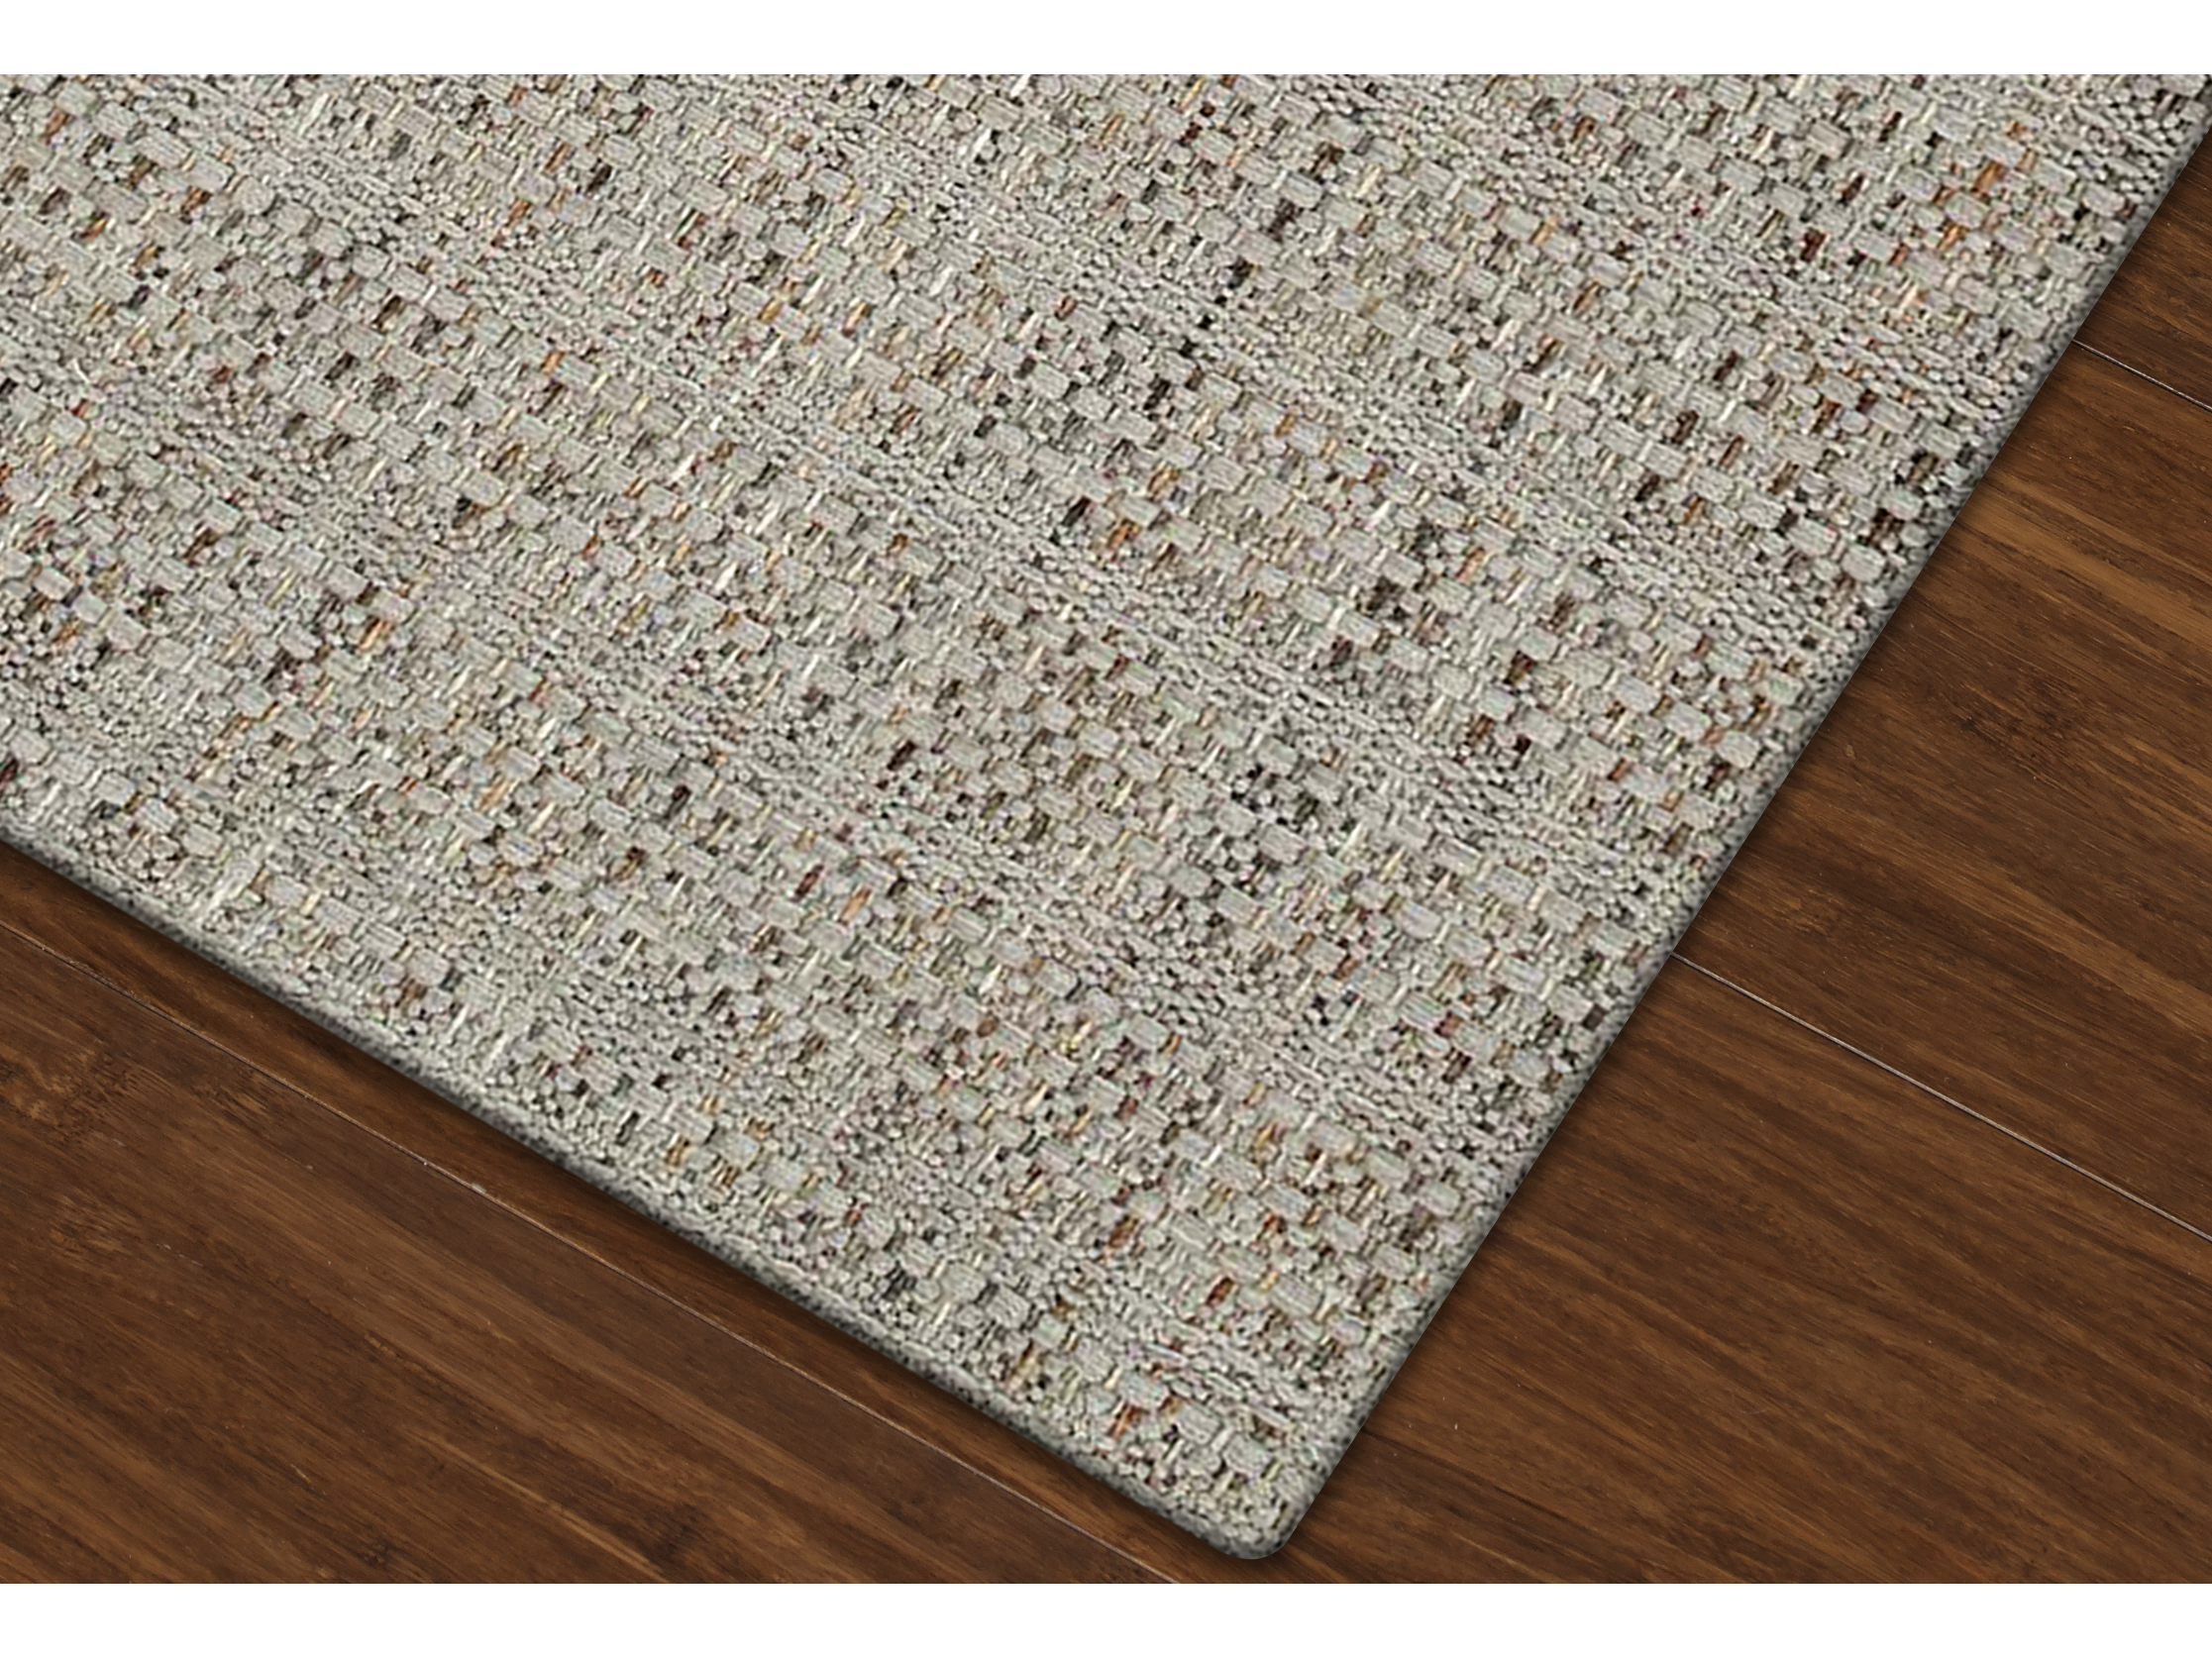 Dalyn Nepal Taupe Rectangular Area Rug Nl100 Taupe